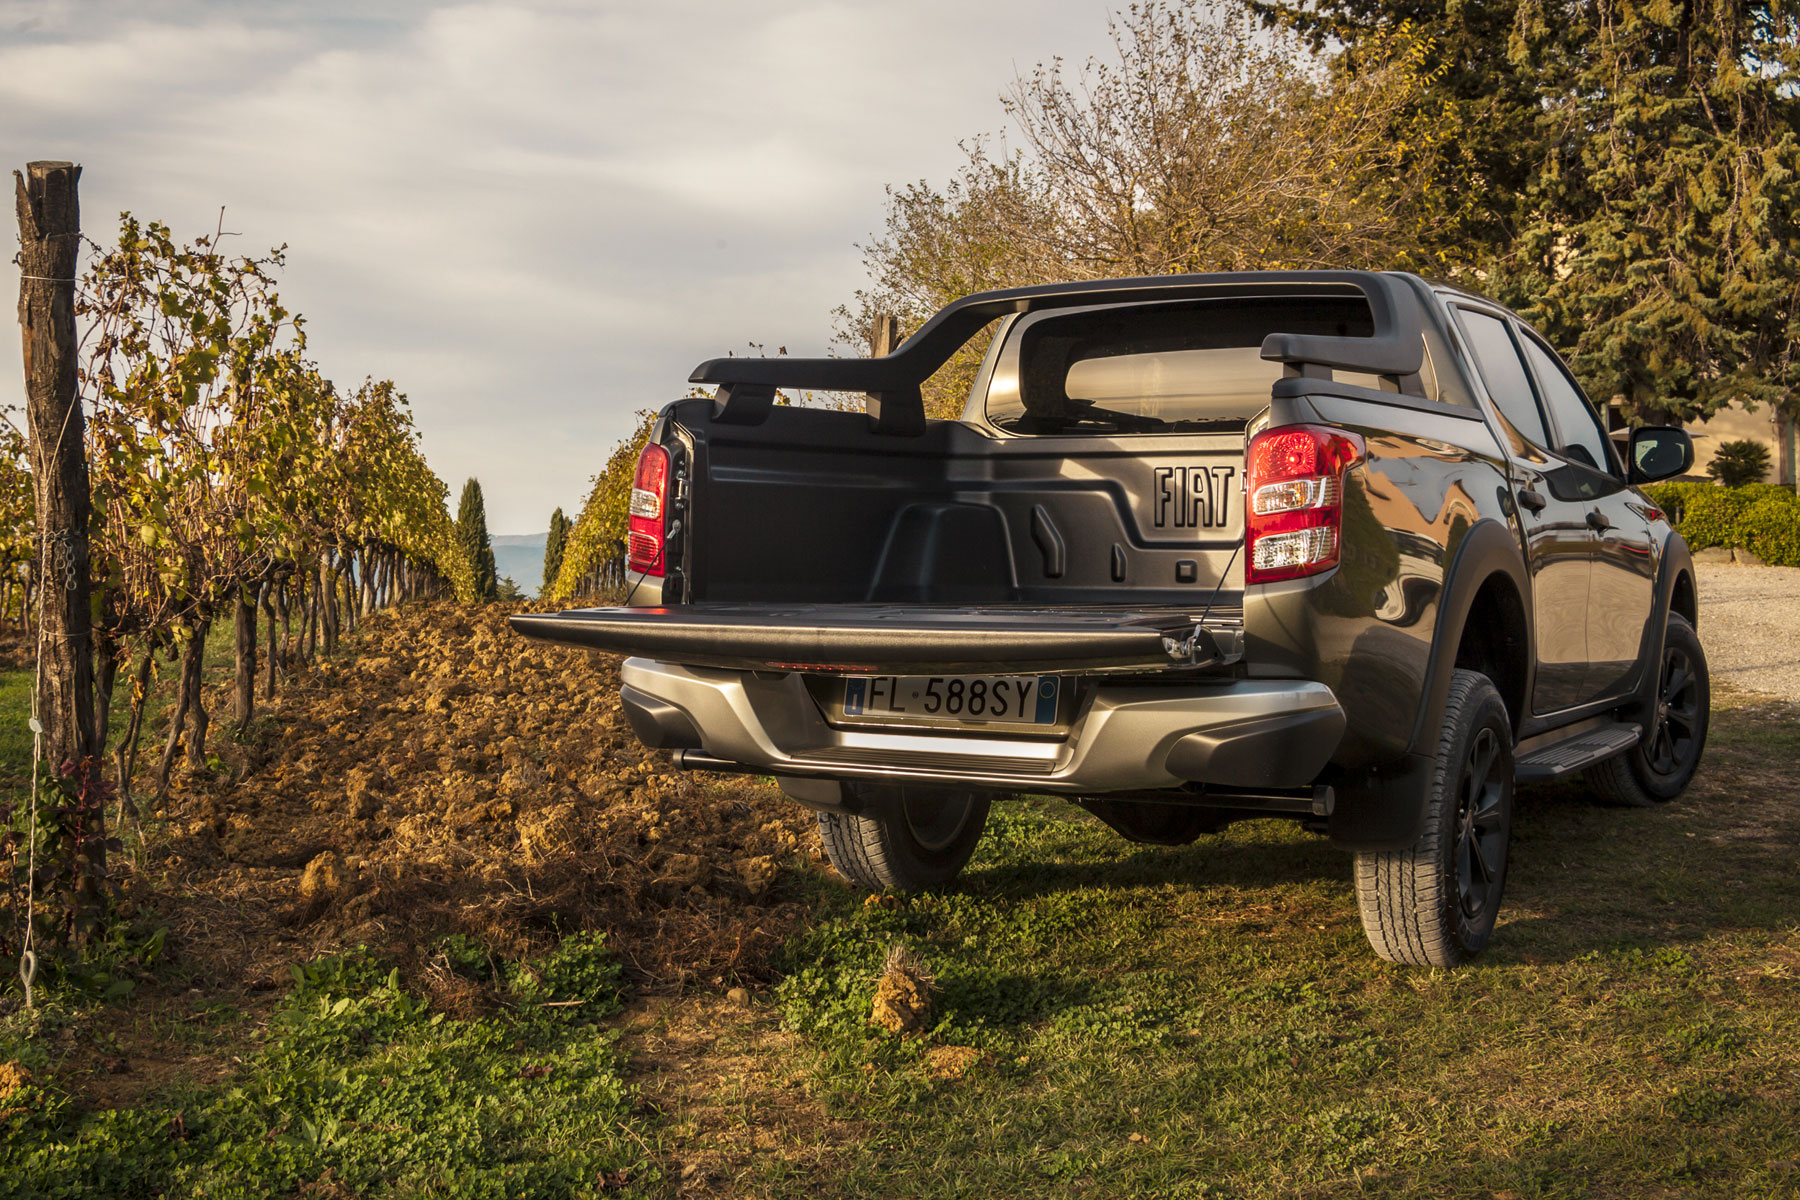 Fiat Fullback Cross review - load bed area